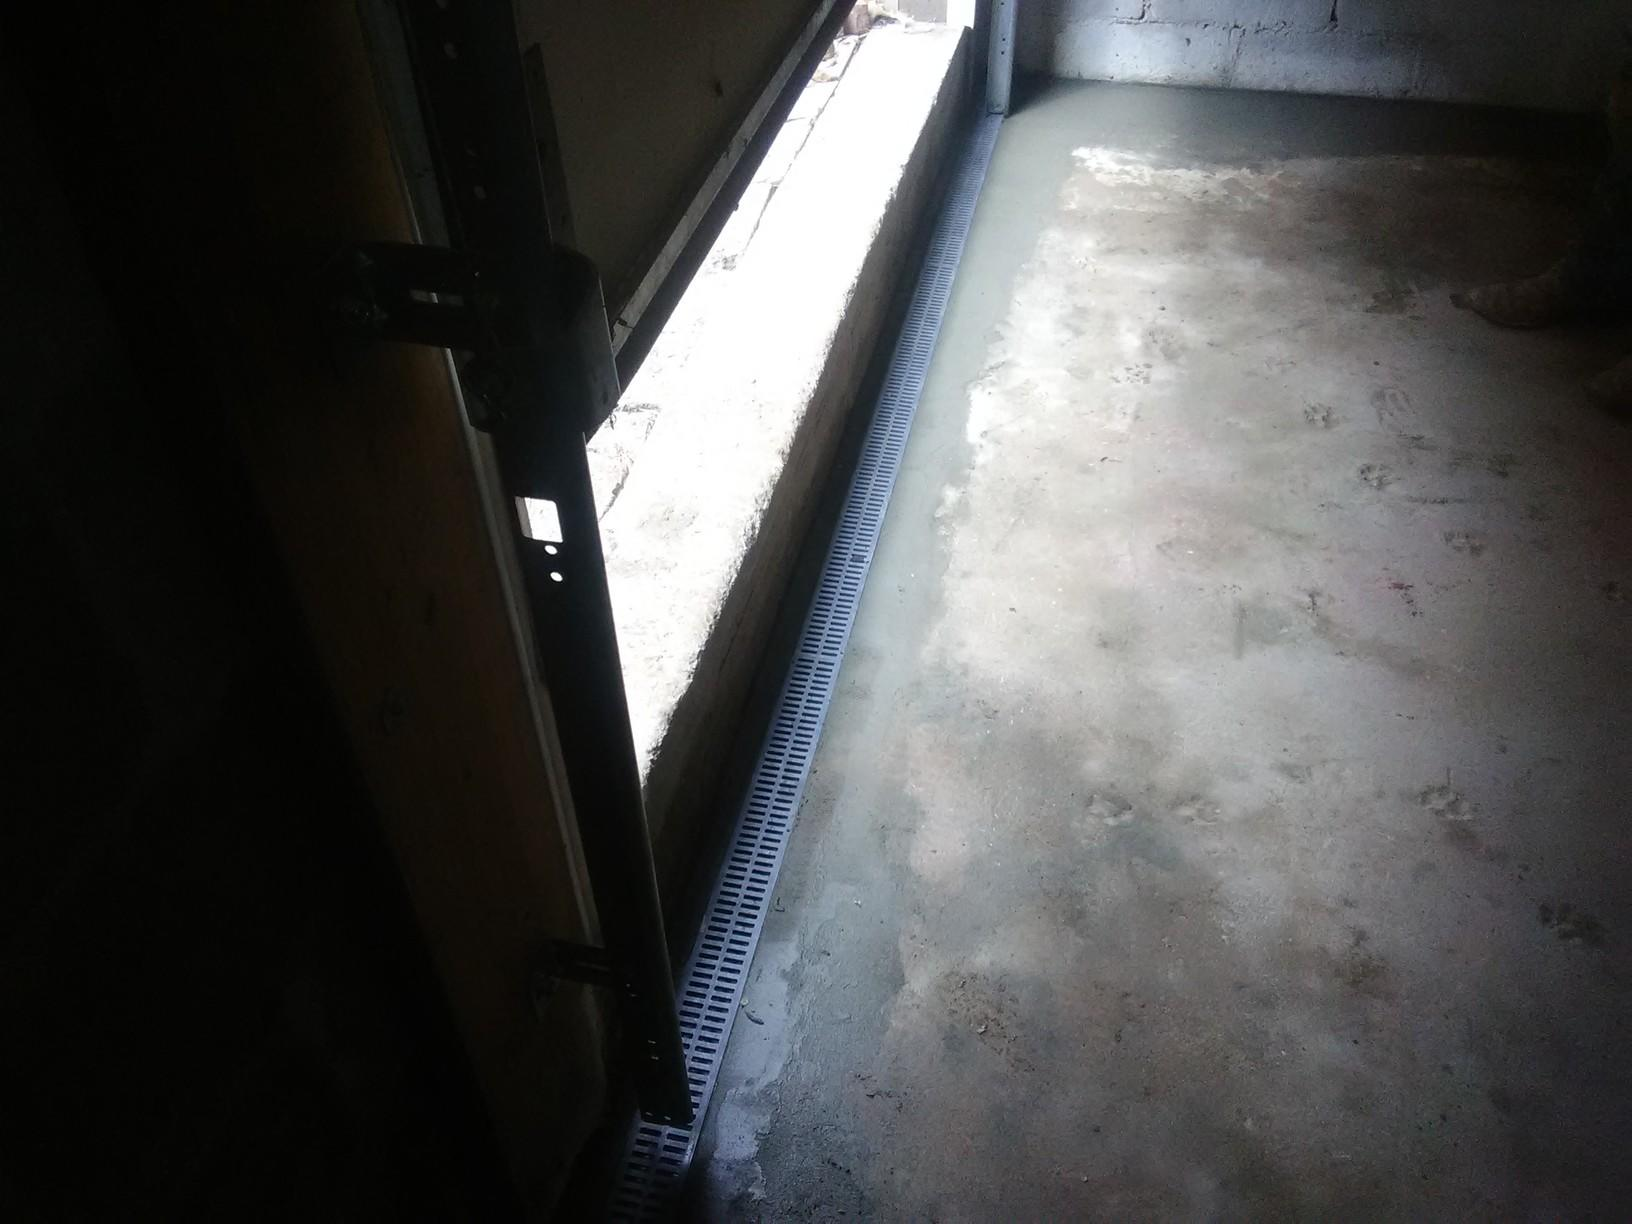 Trench Drain Installed in Little Rock, Arkansas Basement - After Photo